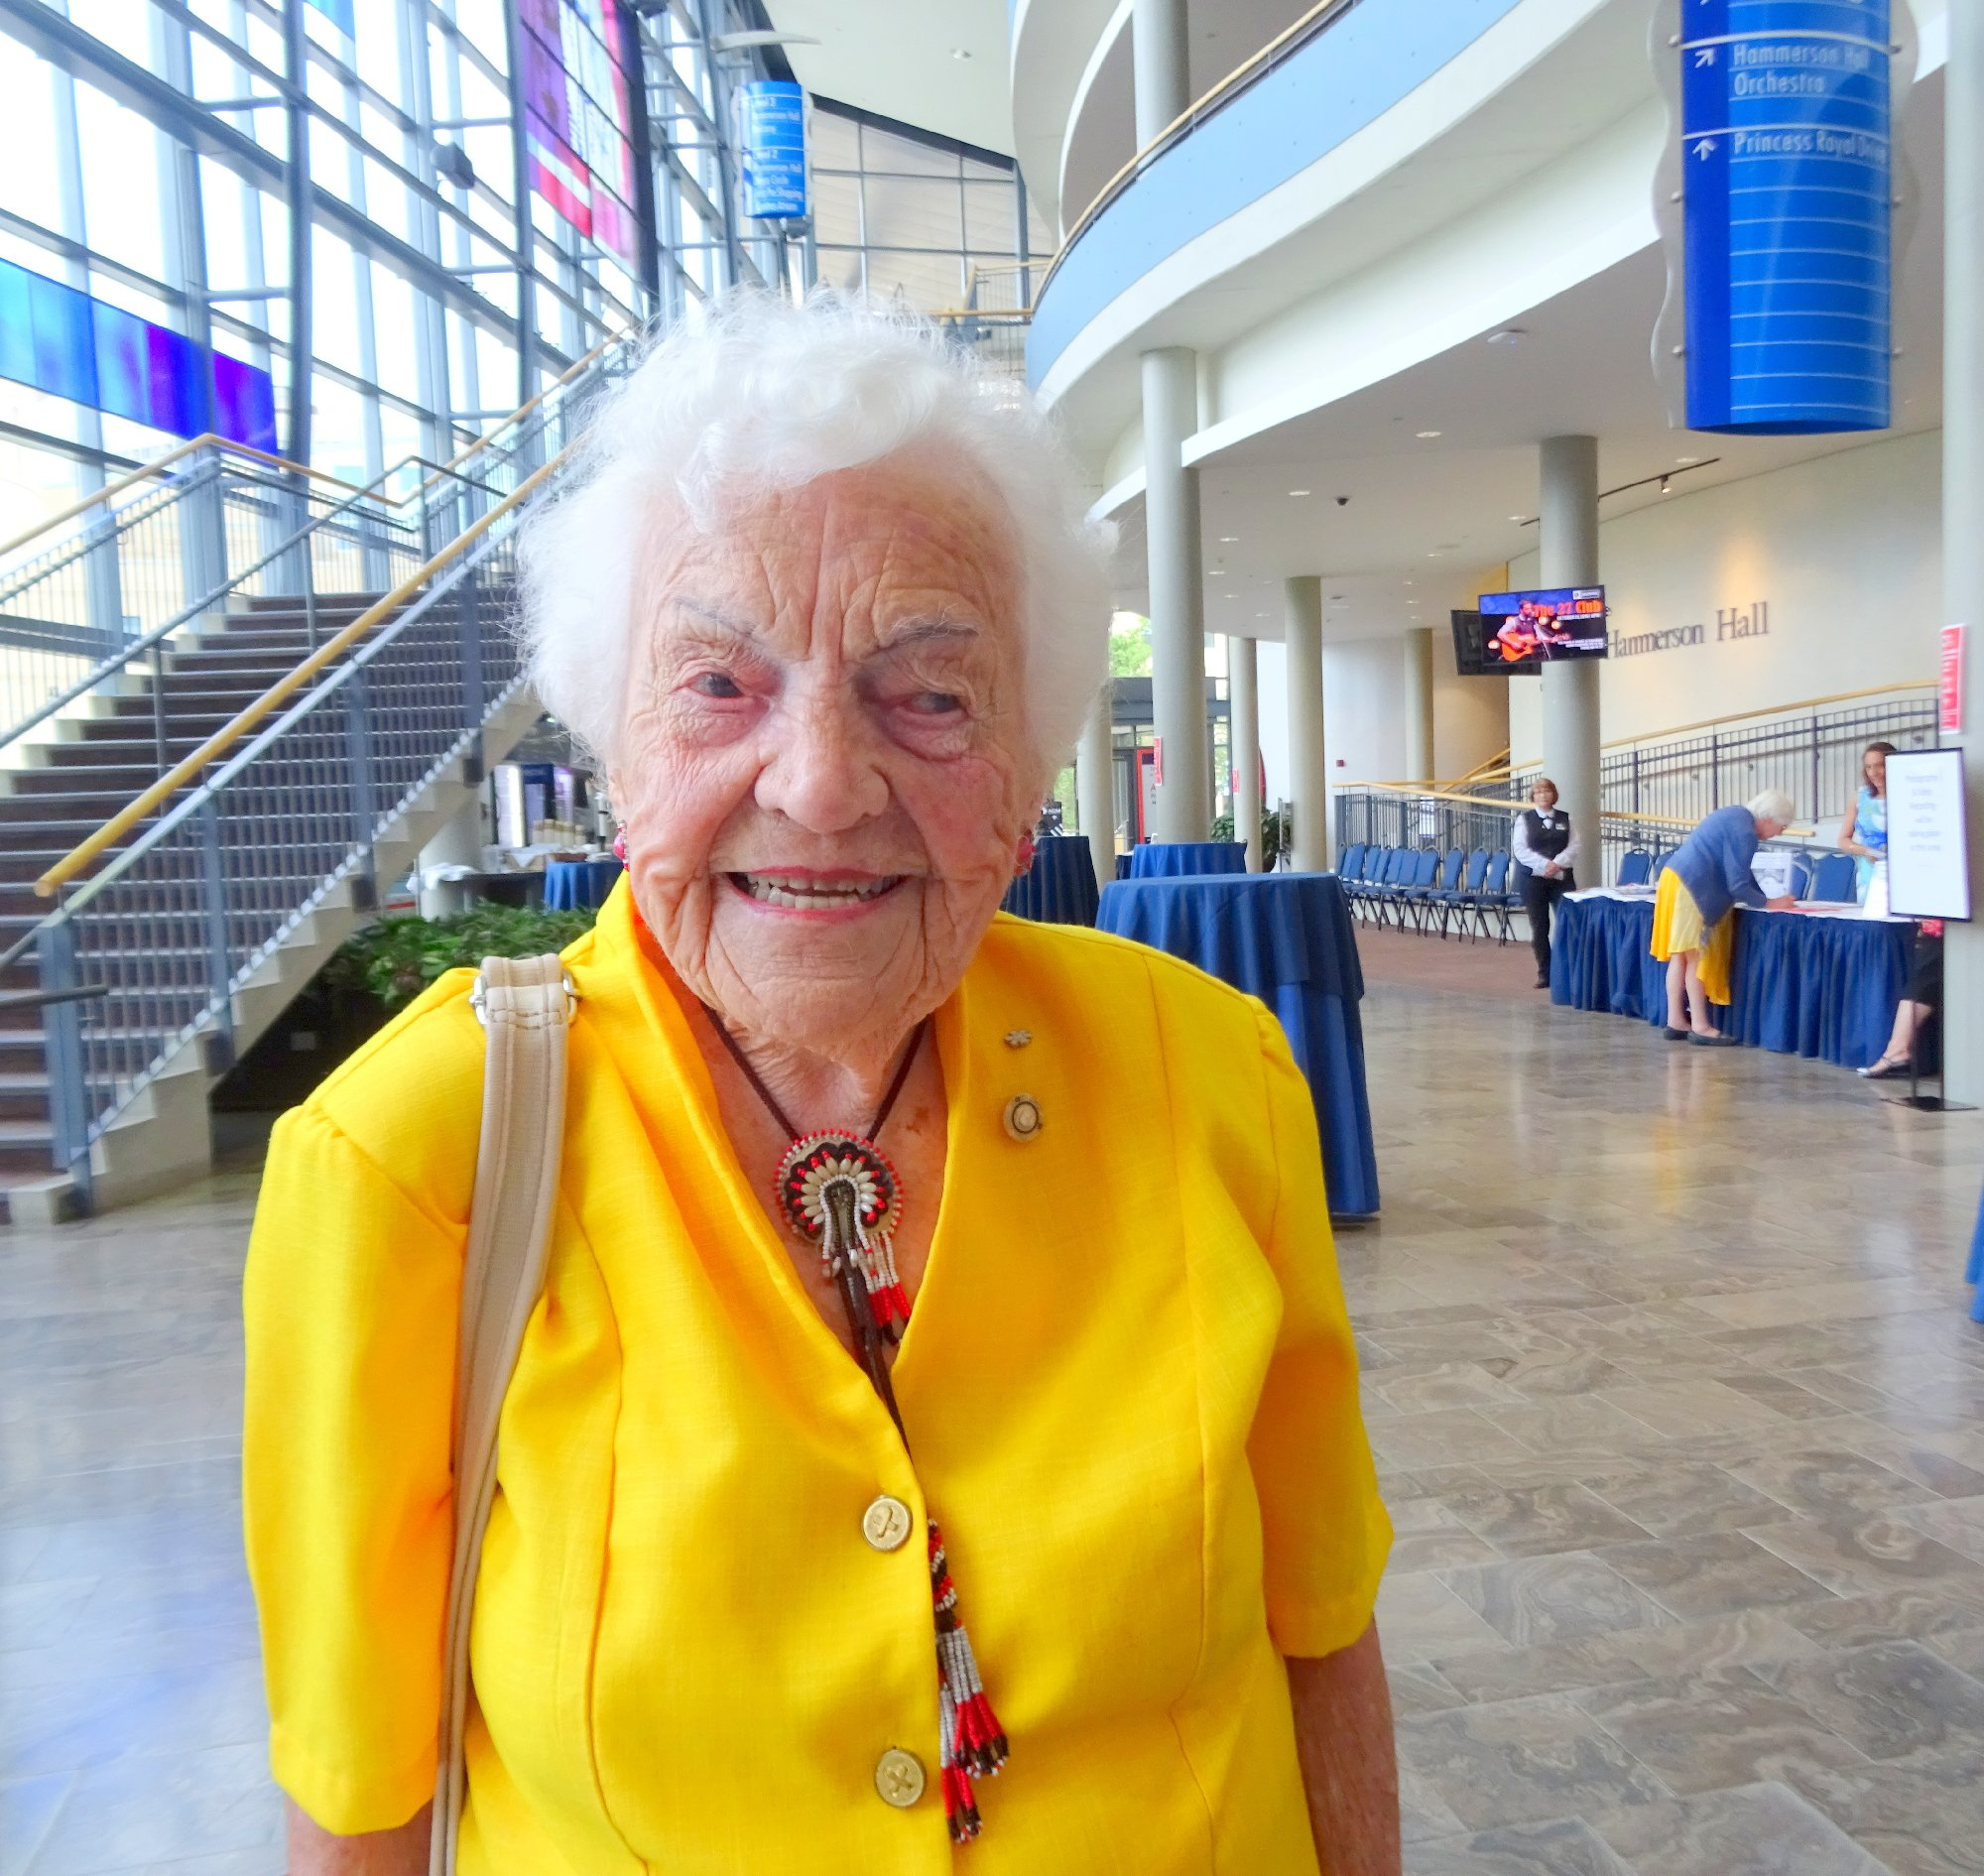 Hazel McCallion, Keynote Speaker, June 18, 2018 Photo by I Lee